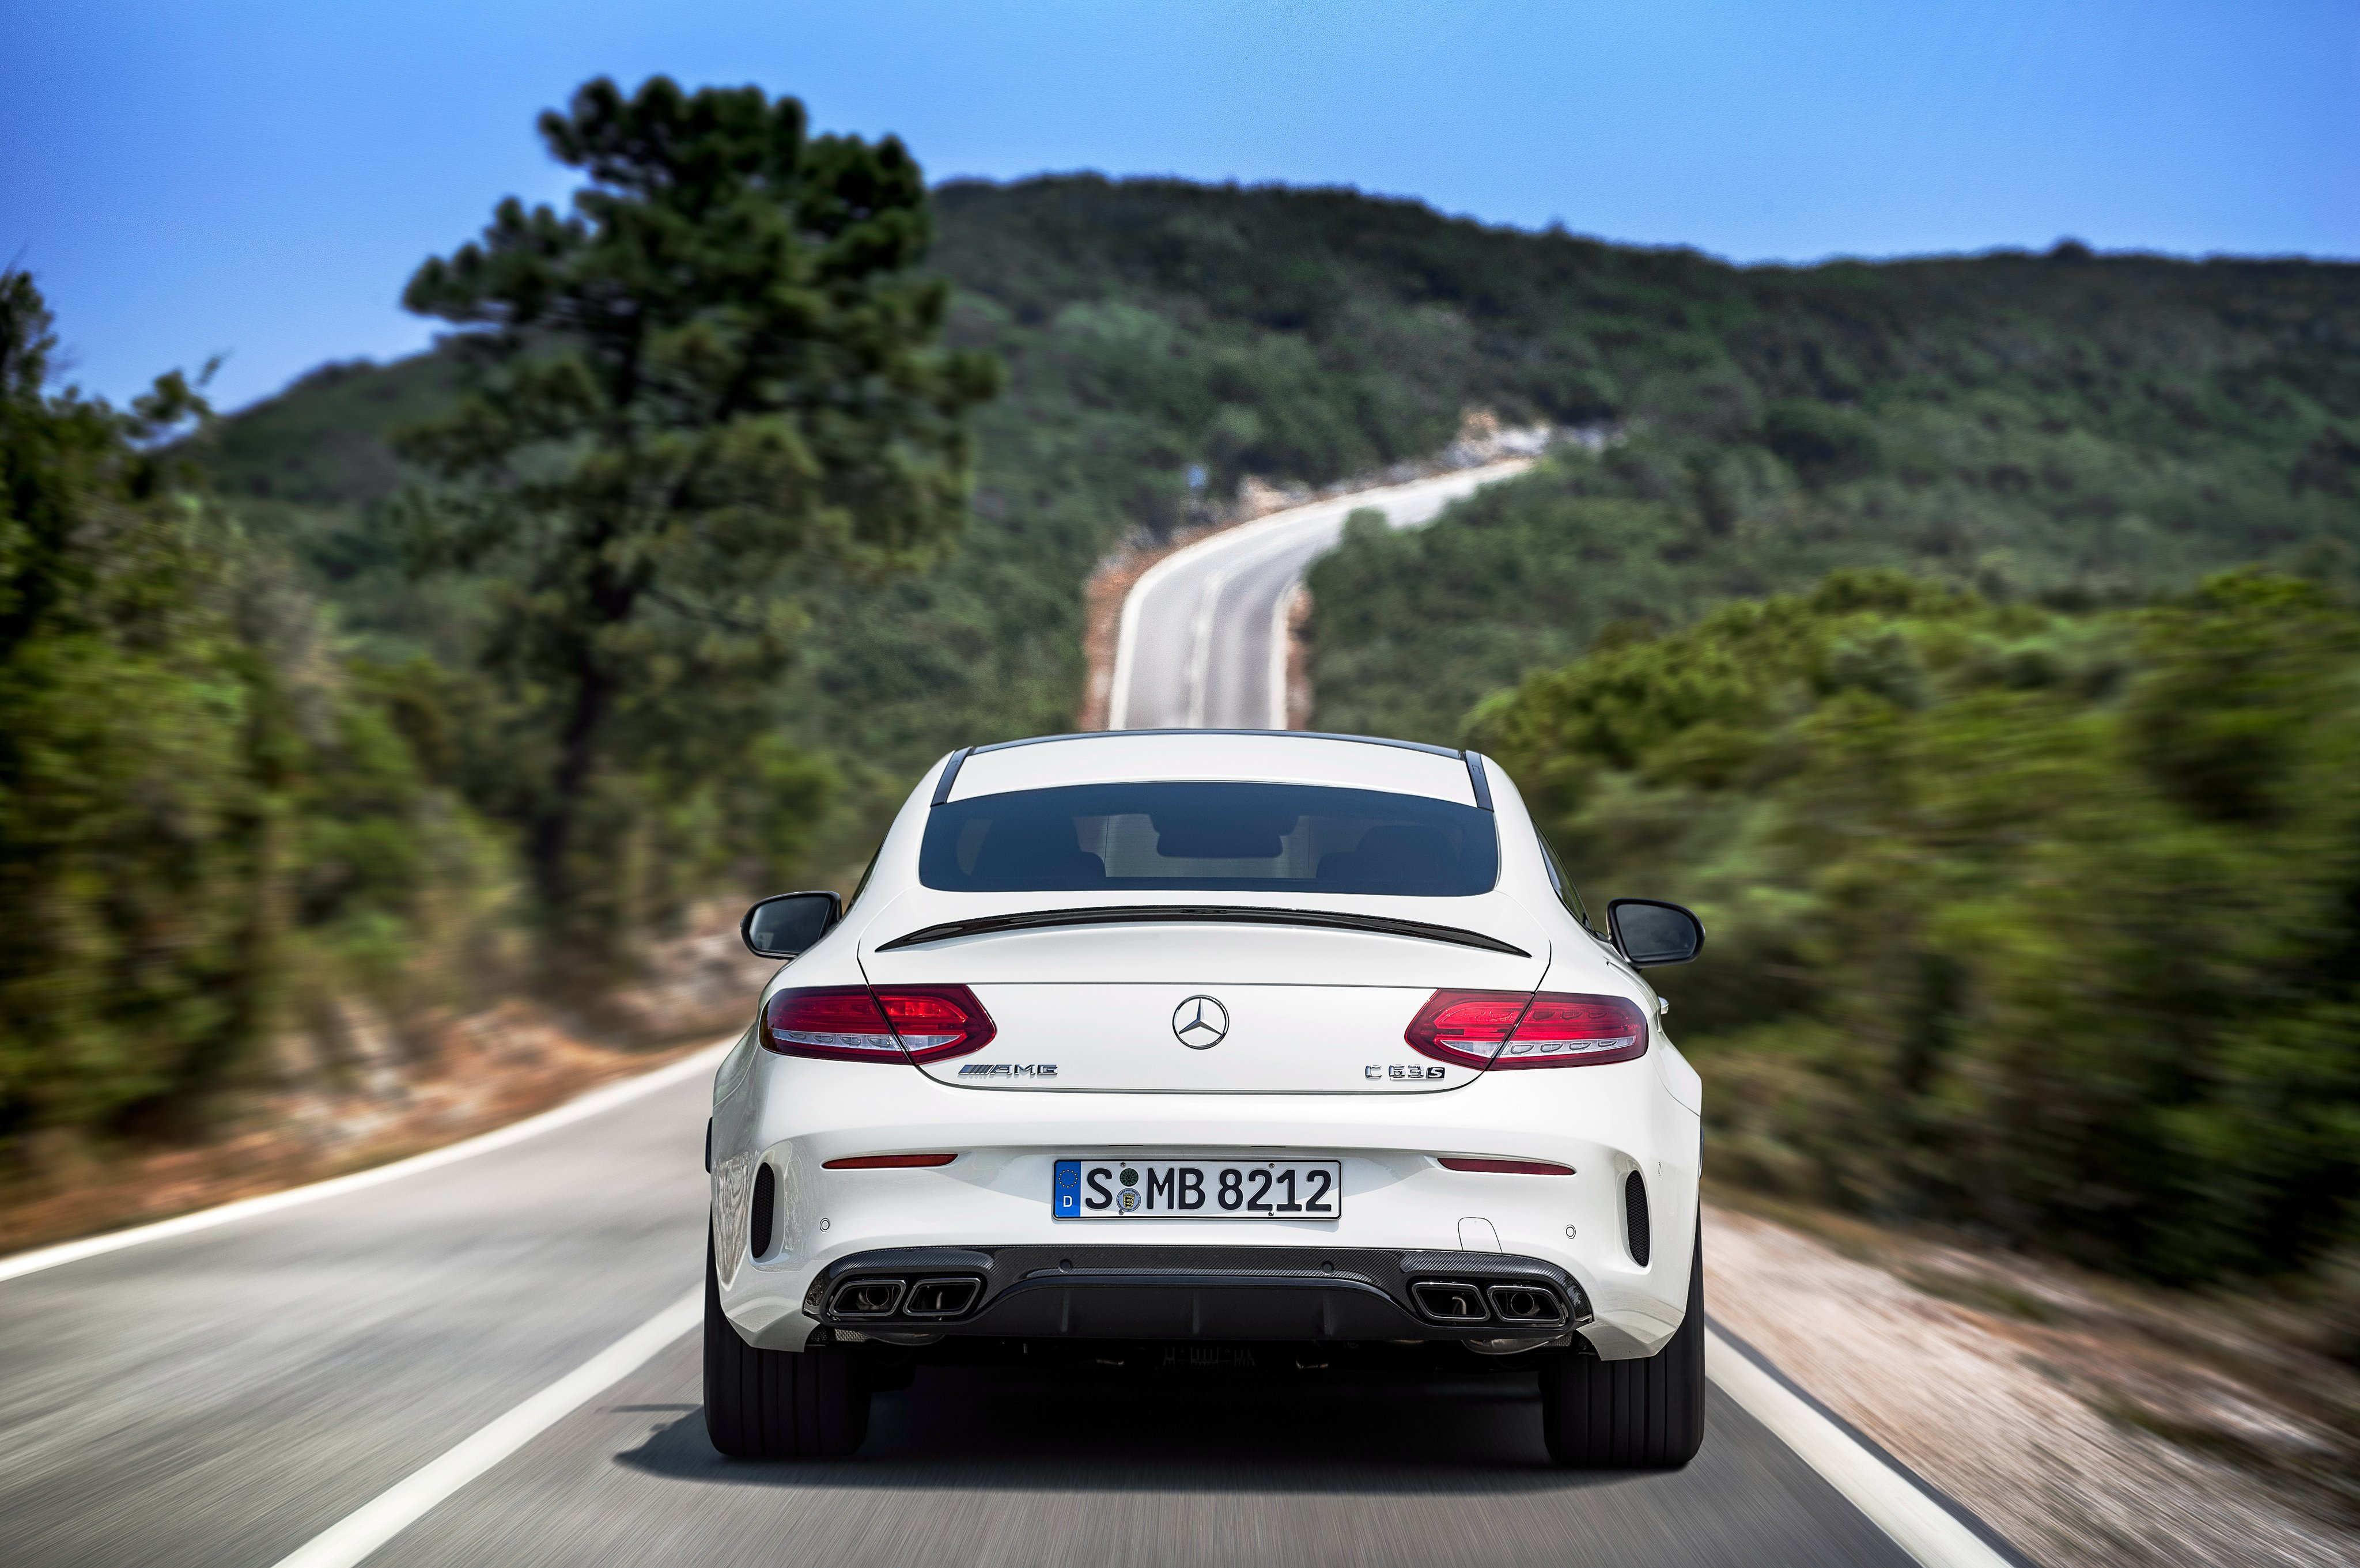 Mercedes amg c 63 s coupe edition 1 2016 wallpapers and hd images - 2015 Mercedes Amg C63 S Coupe C205 Benz Luxury Wallpaper